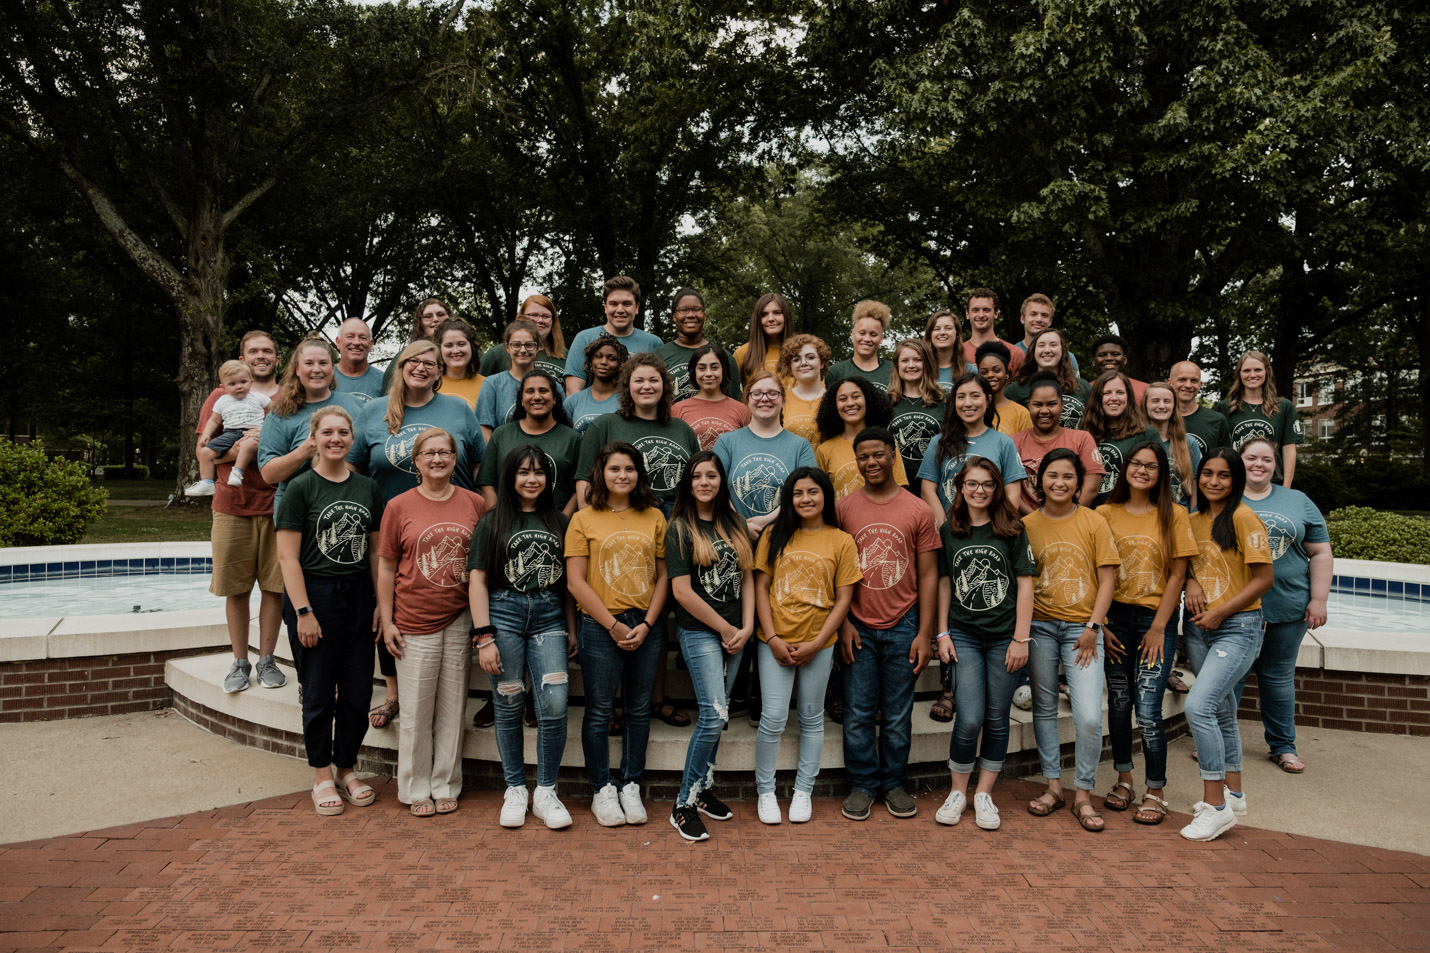 This is a group photo of all the 2019 Upward Bound students.